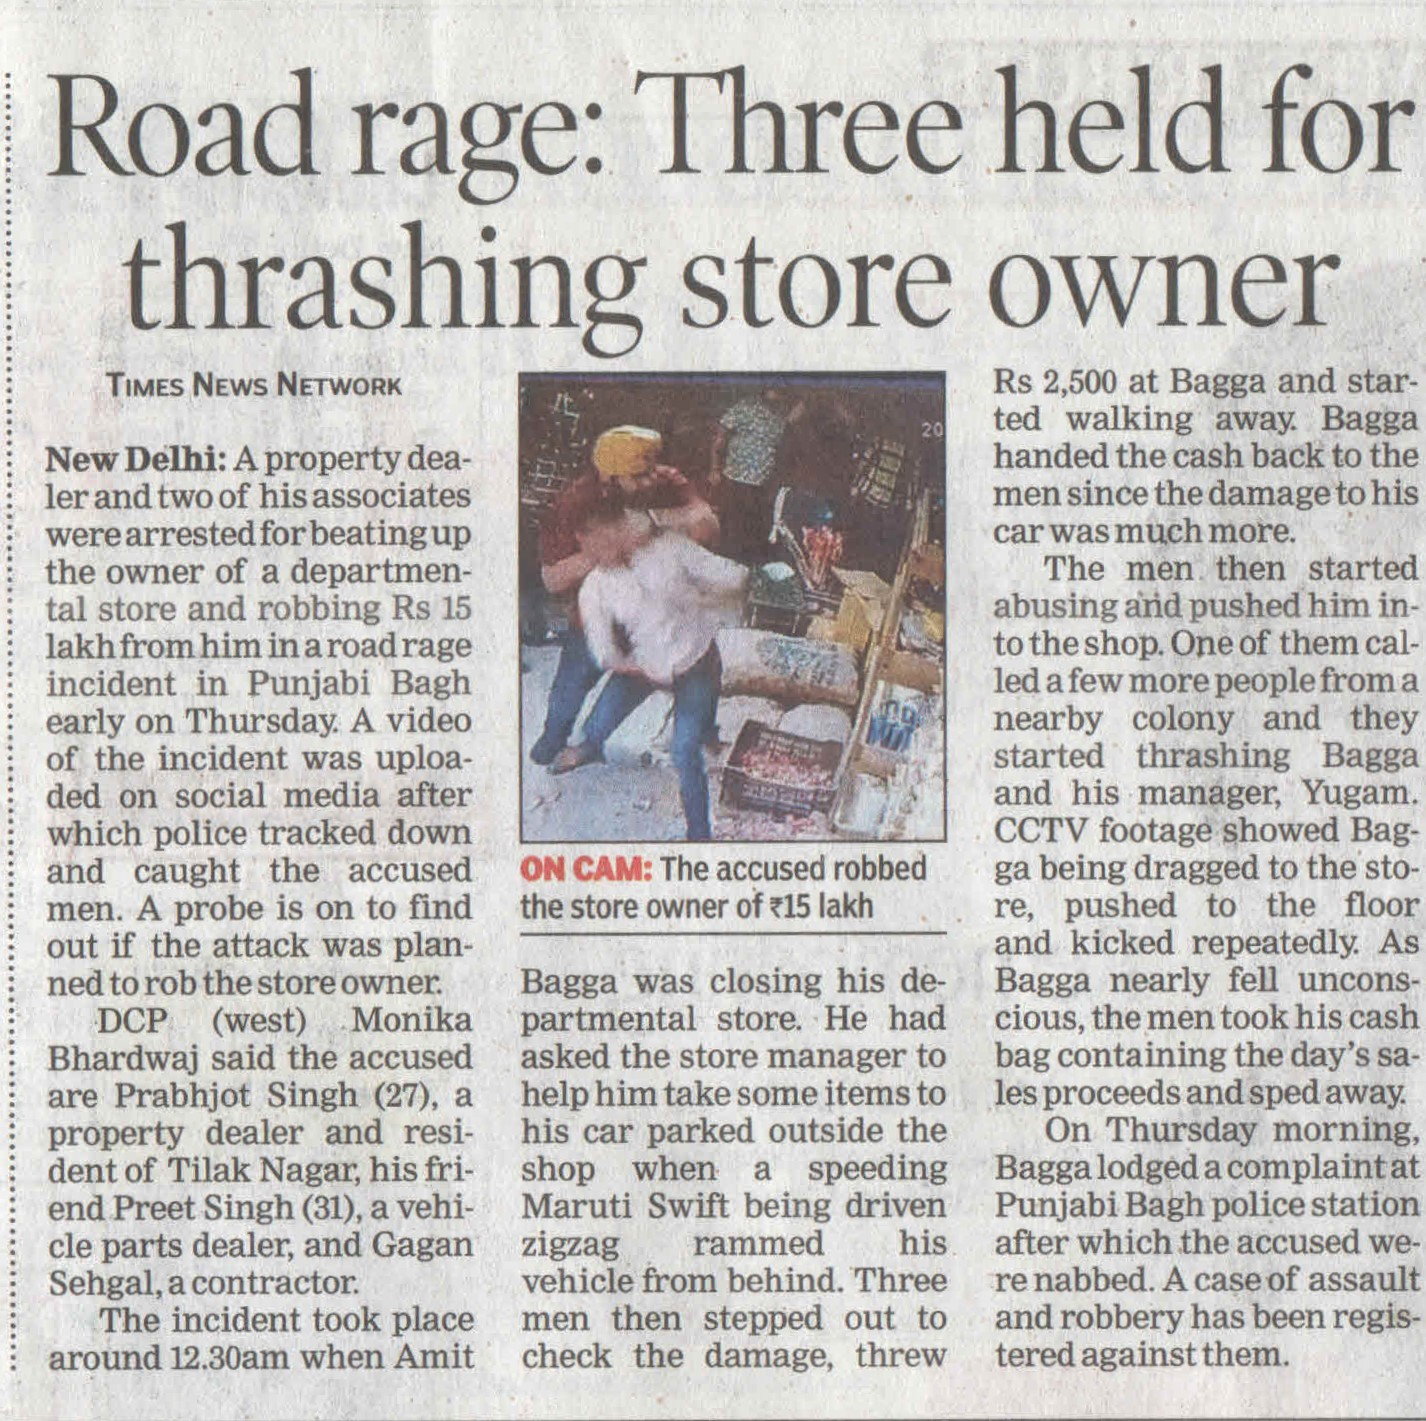 Road rage: Threeheld for thrashing store owner